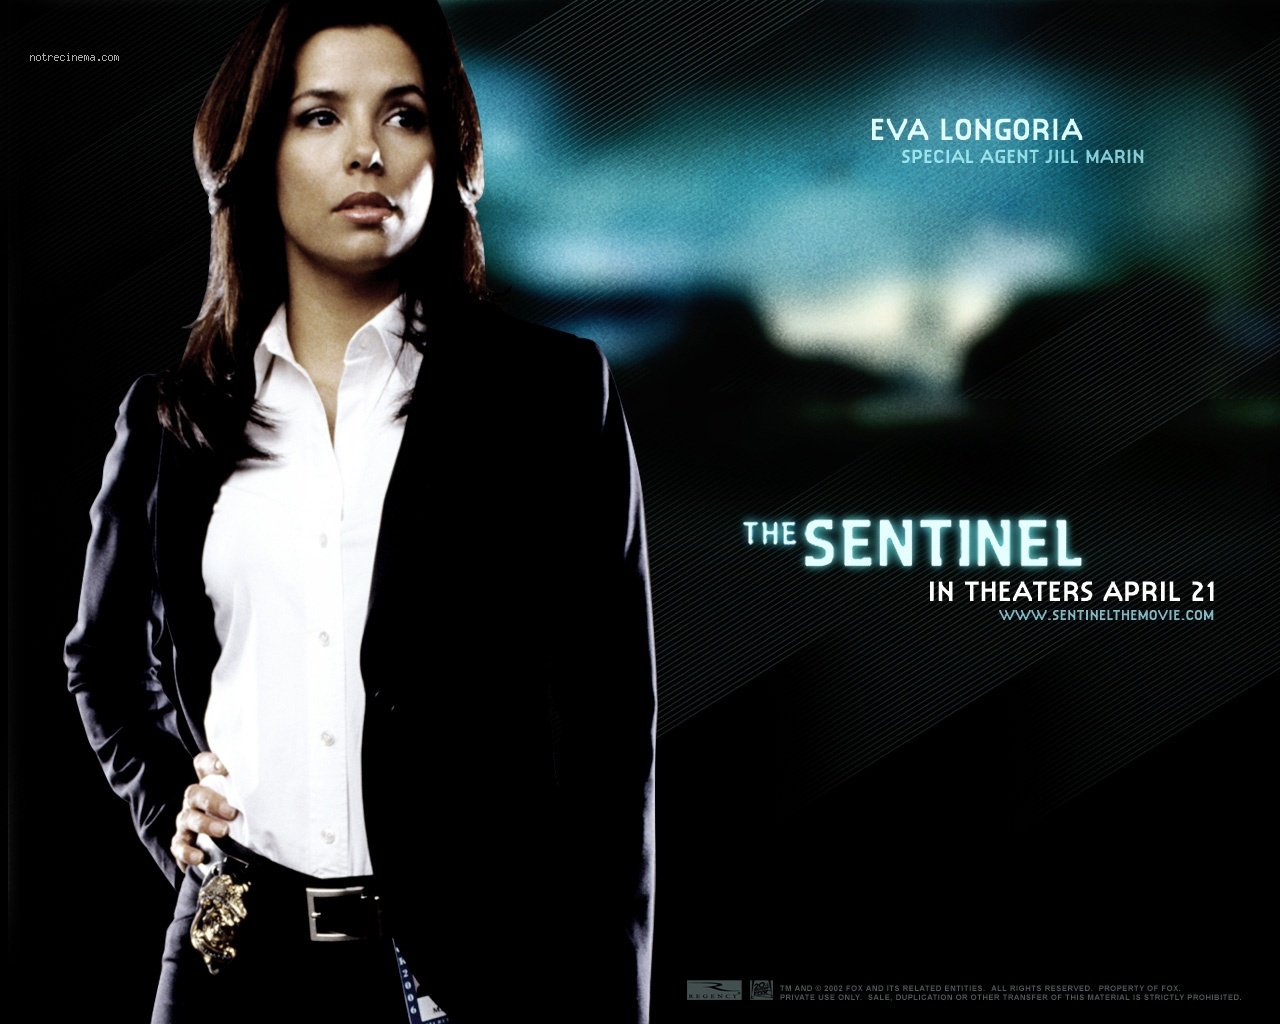 the-sentinel-wallpaper 280033 15178